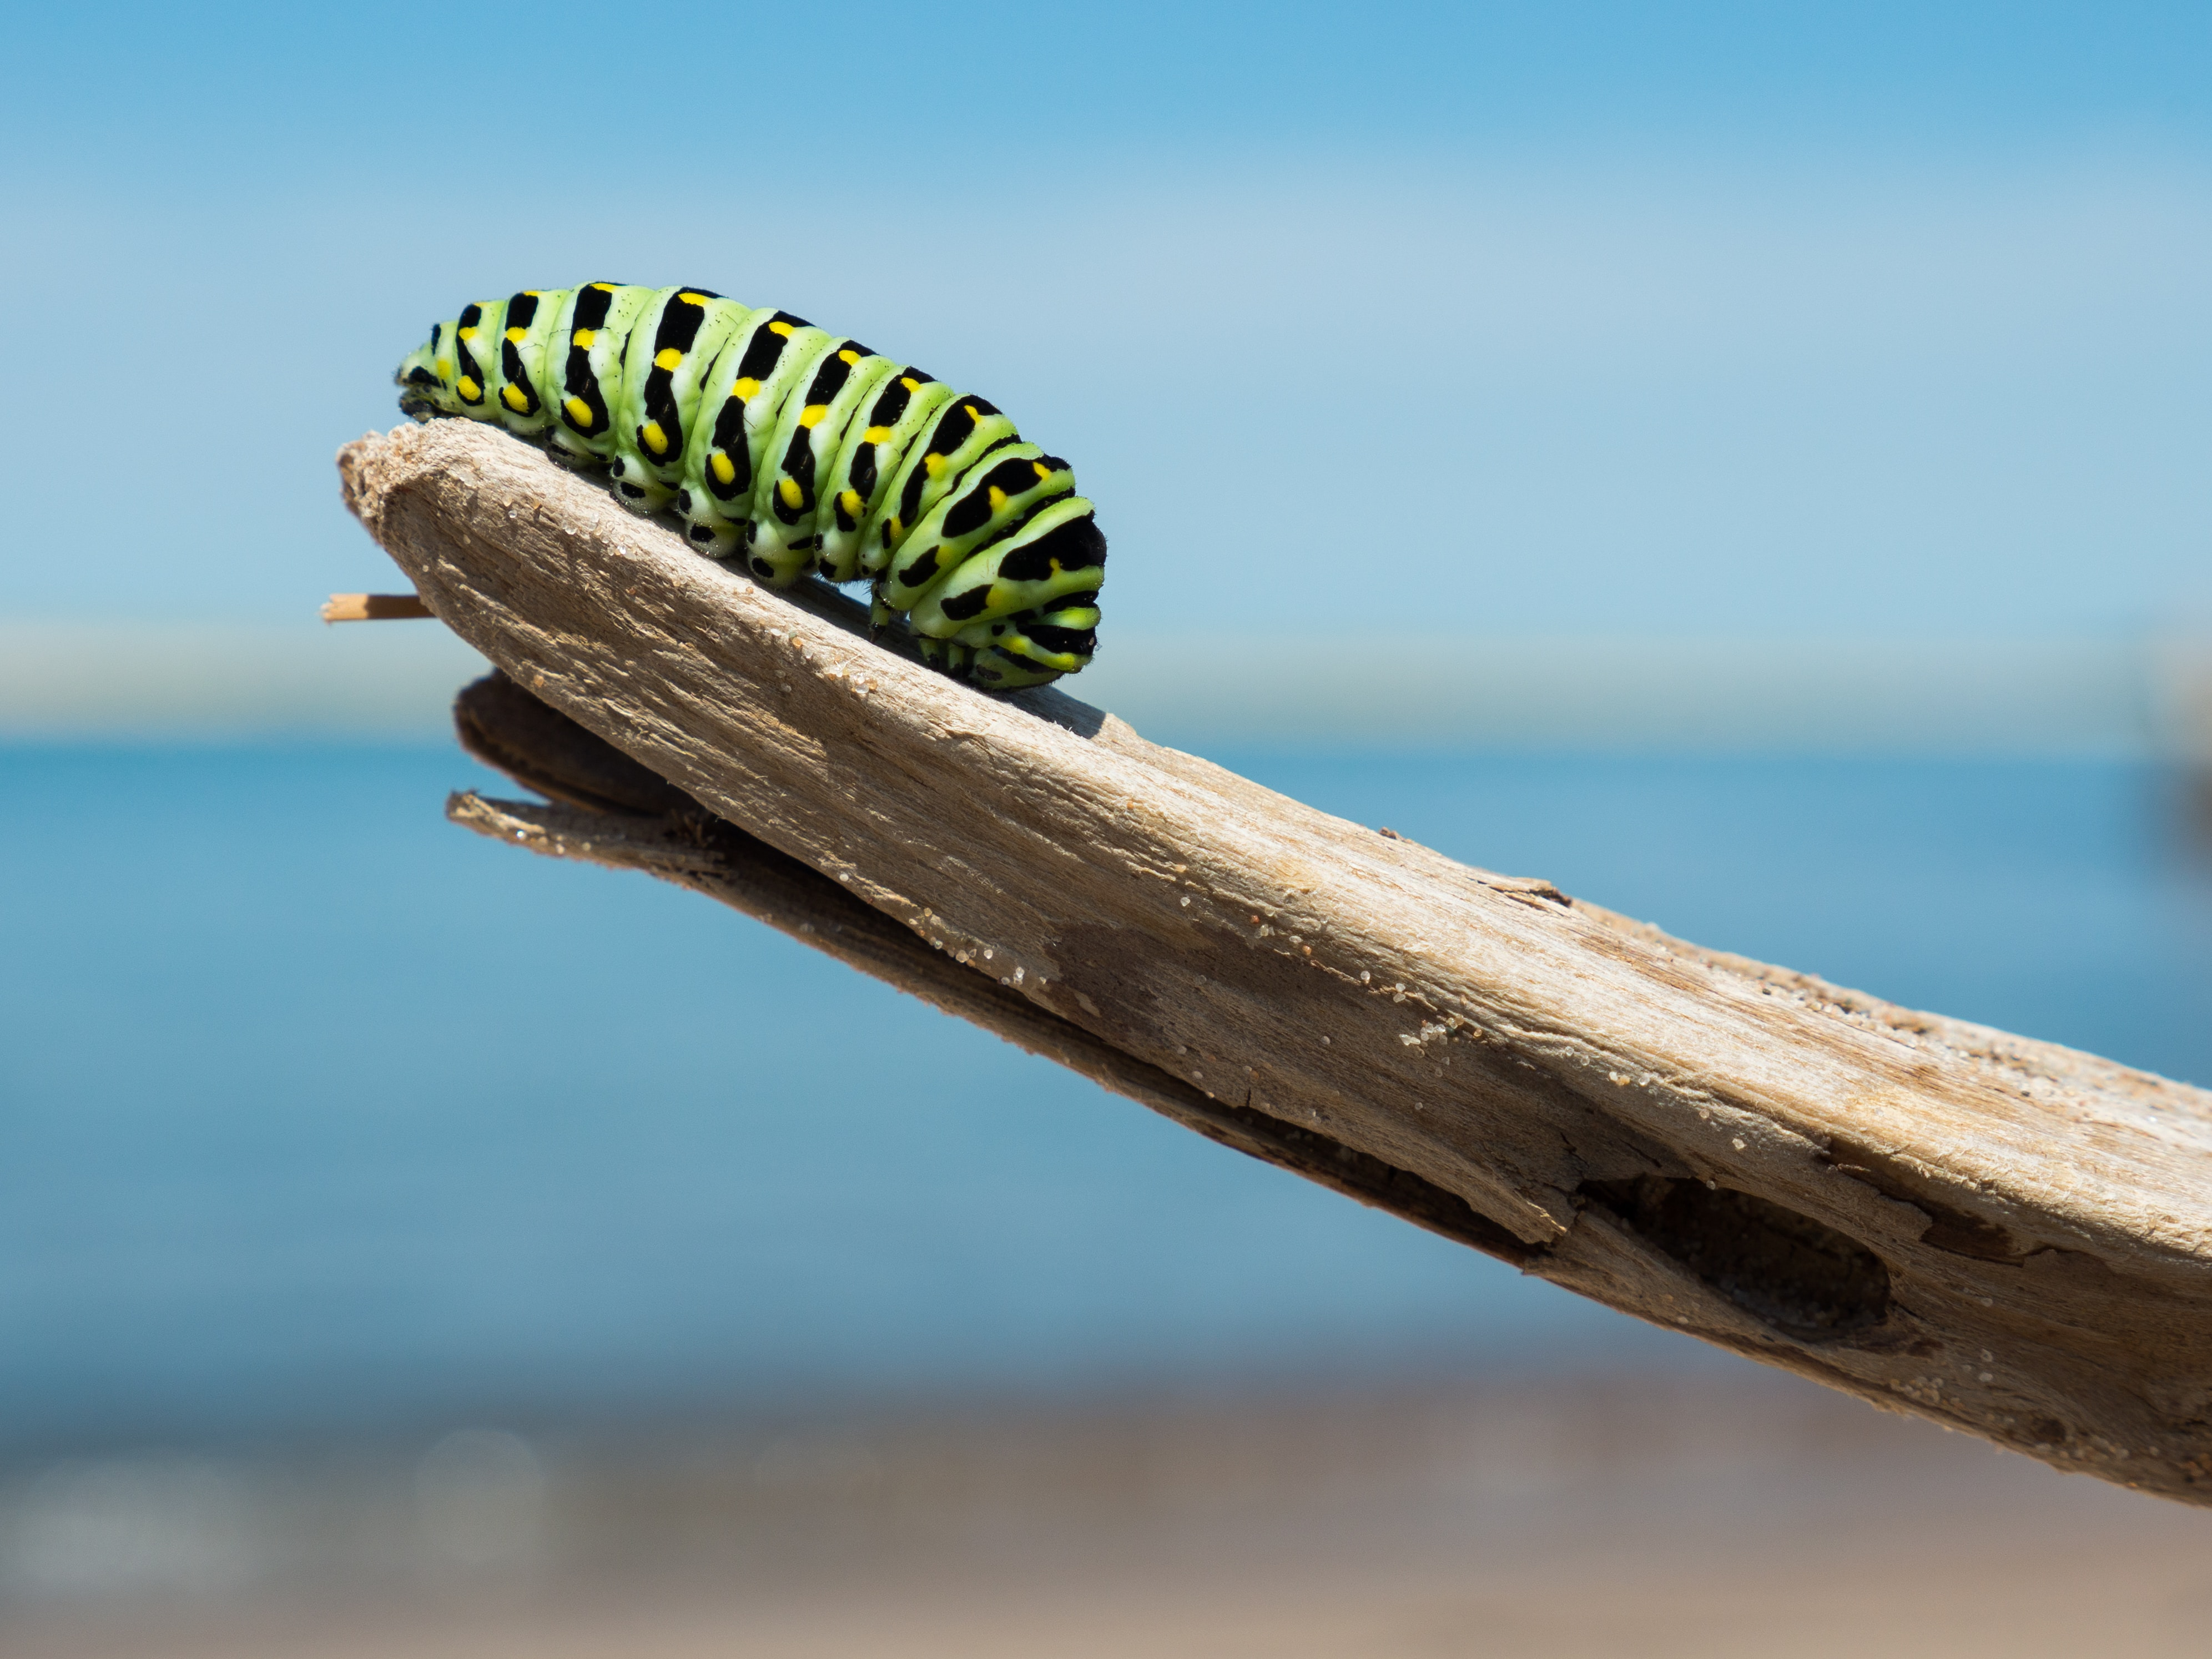 Image of a caterpillar